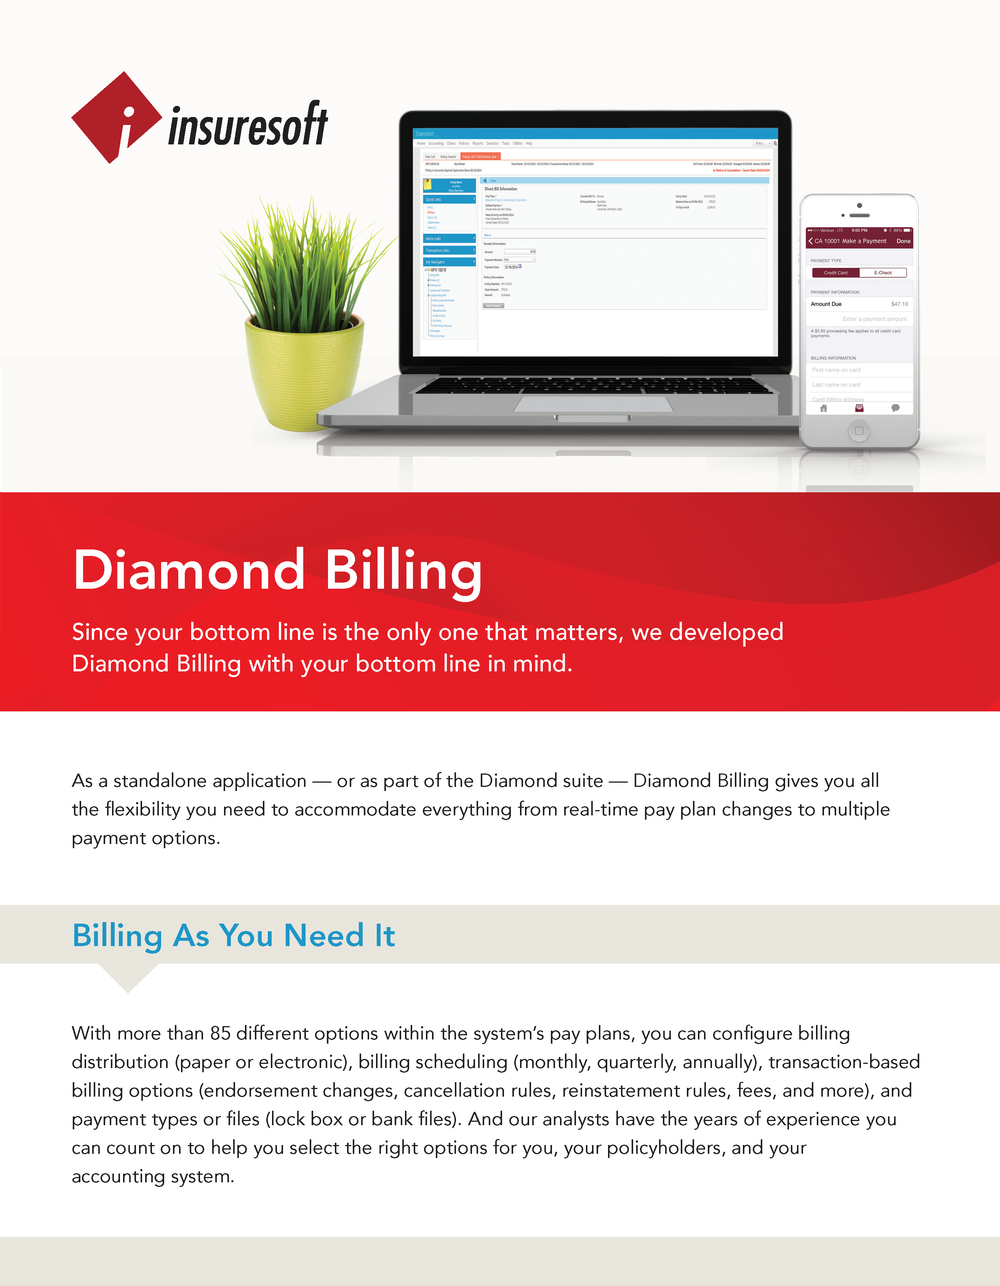 Diamond Billing gives you all the flexibility you need from real-time pay plan changes to multiple payment options.  Click here for the Diamond Billing Administration Datasheet.